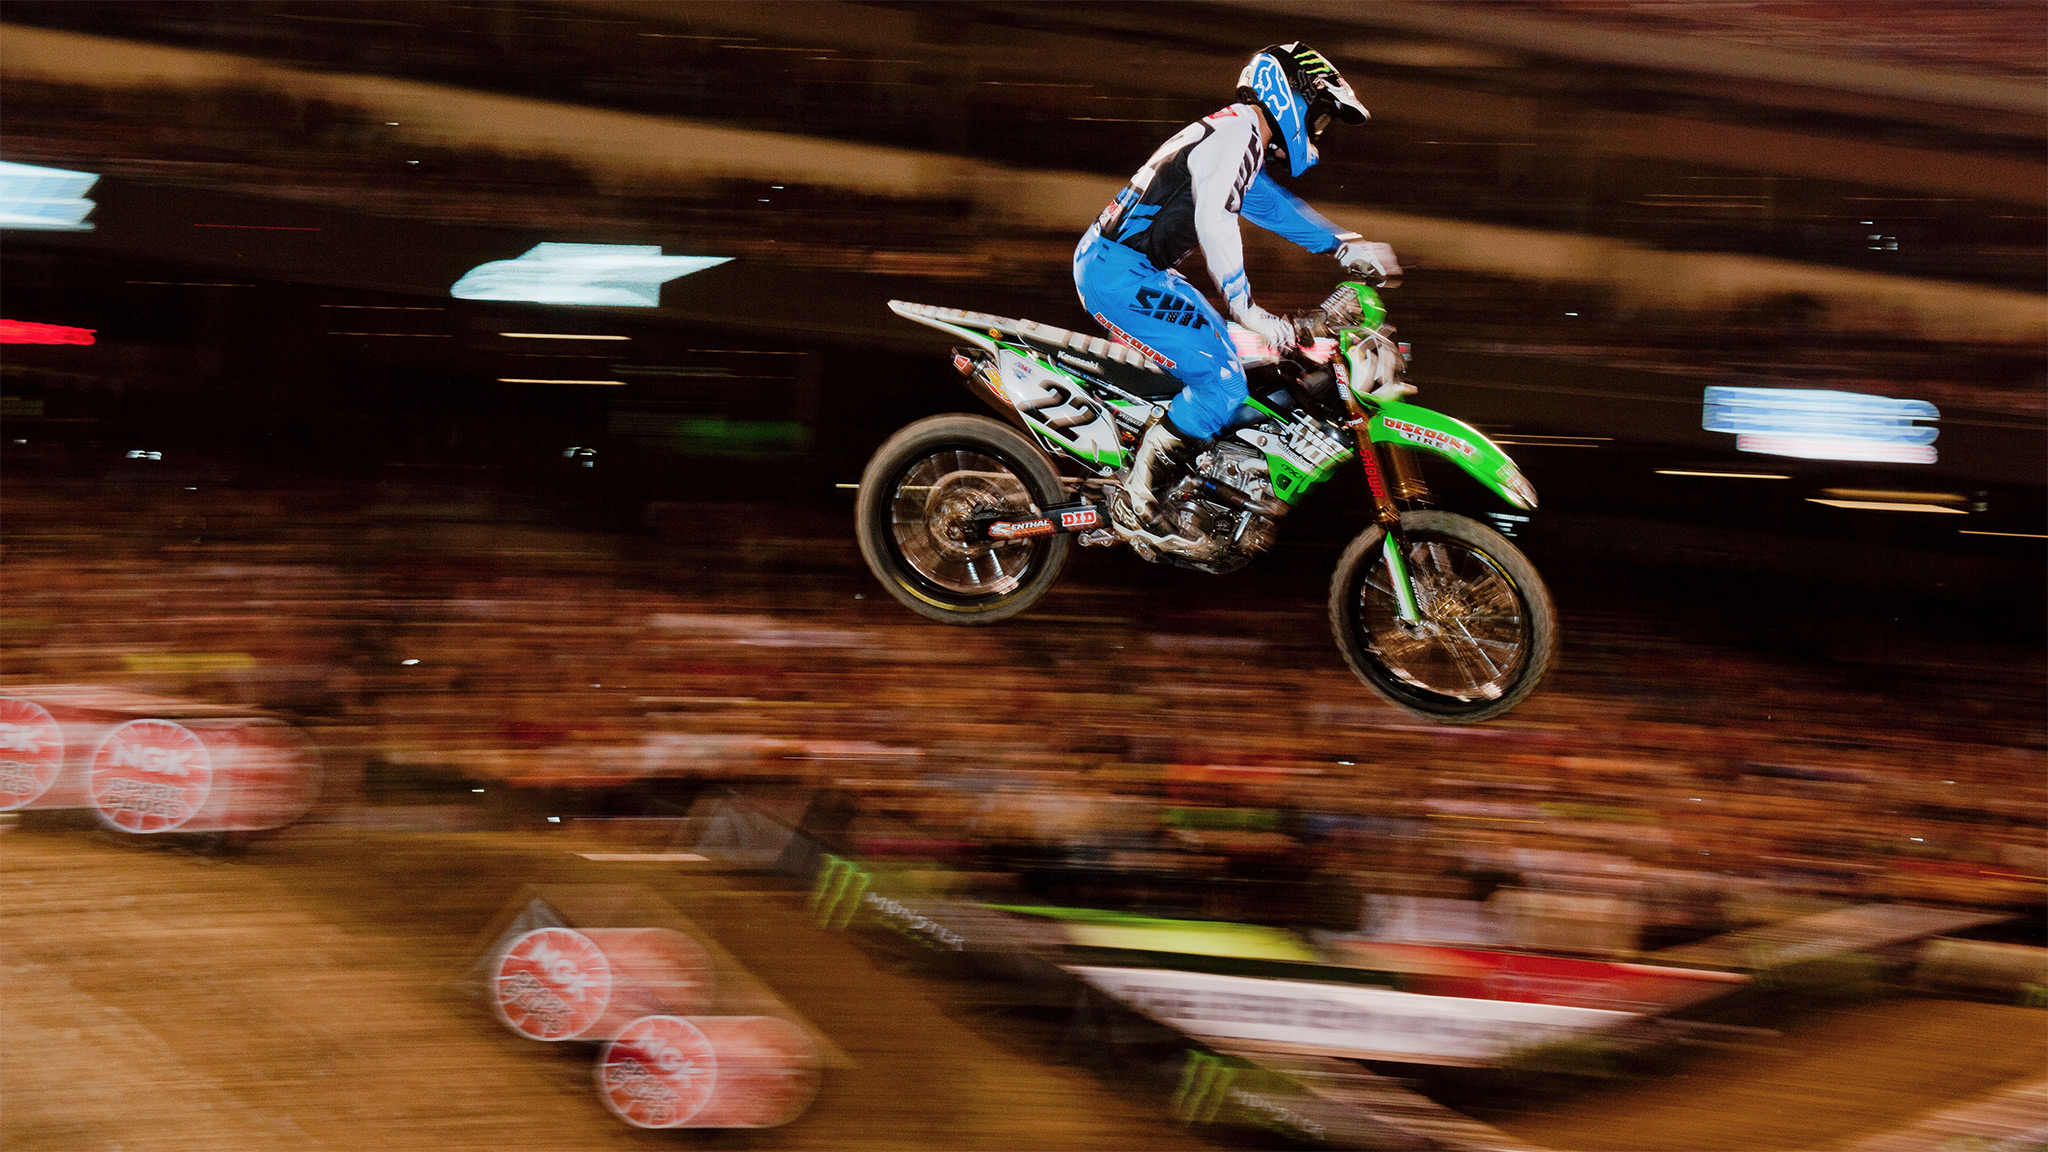 No. 5 Chad Reed